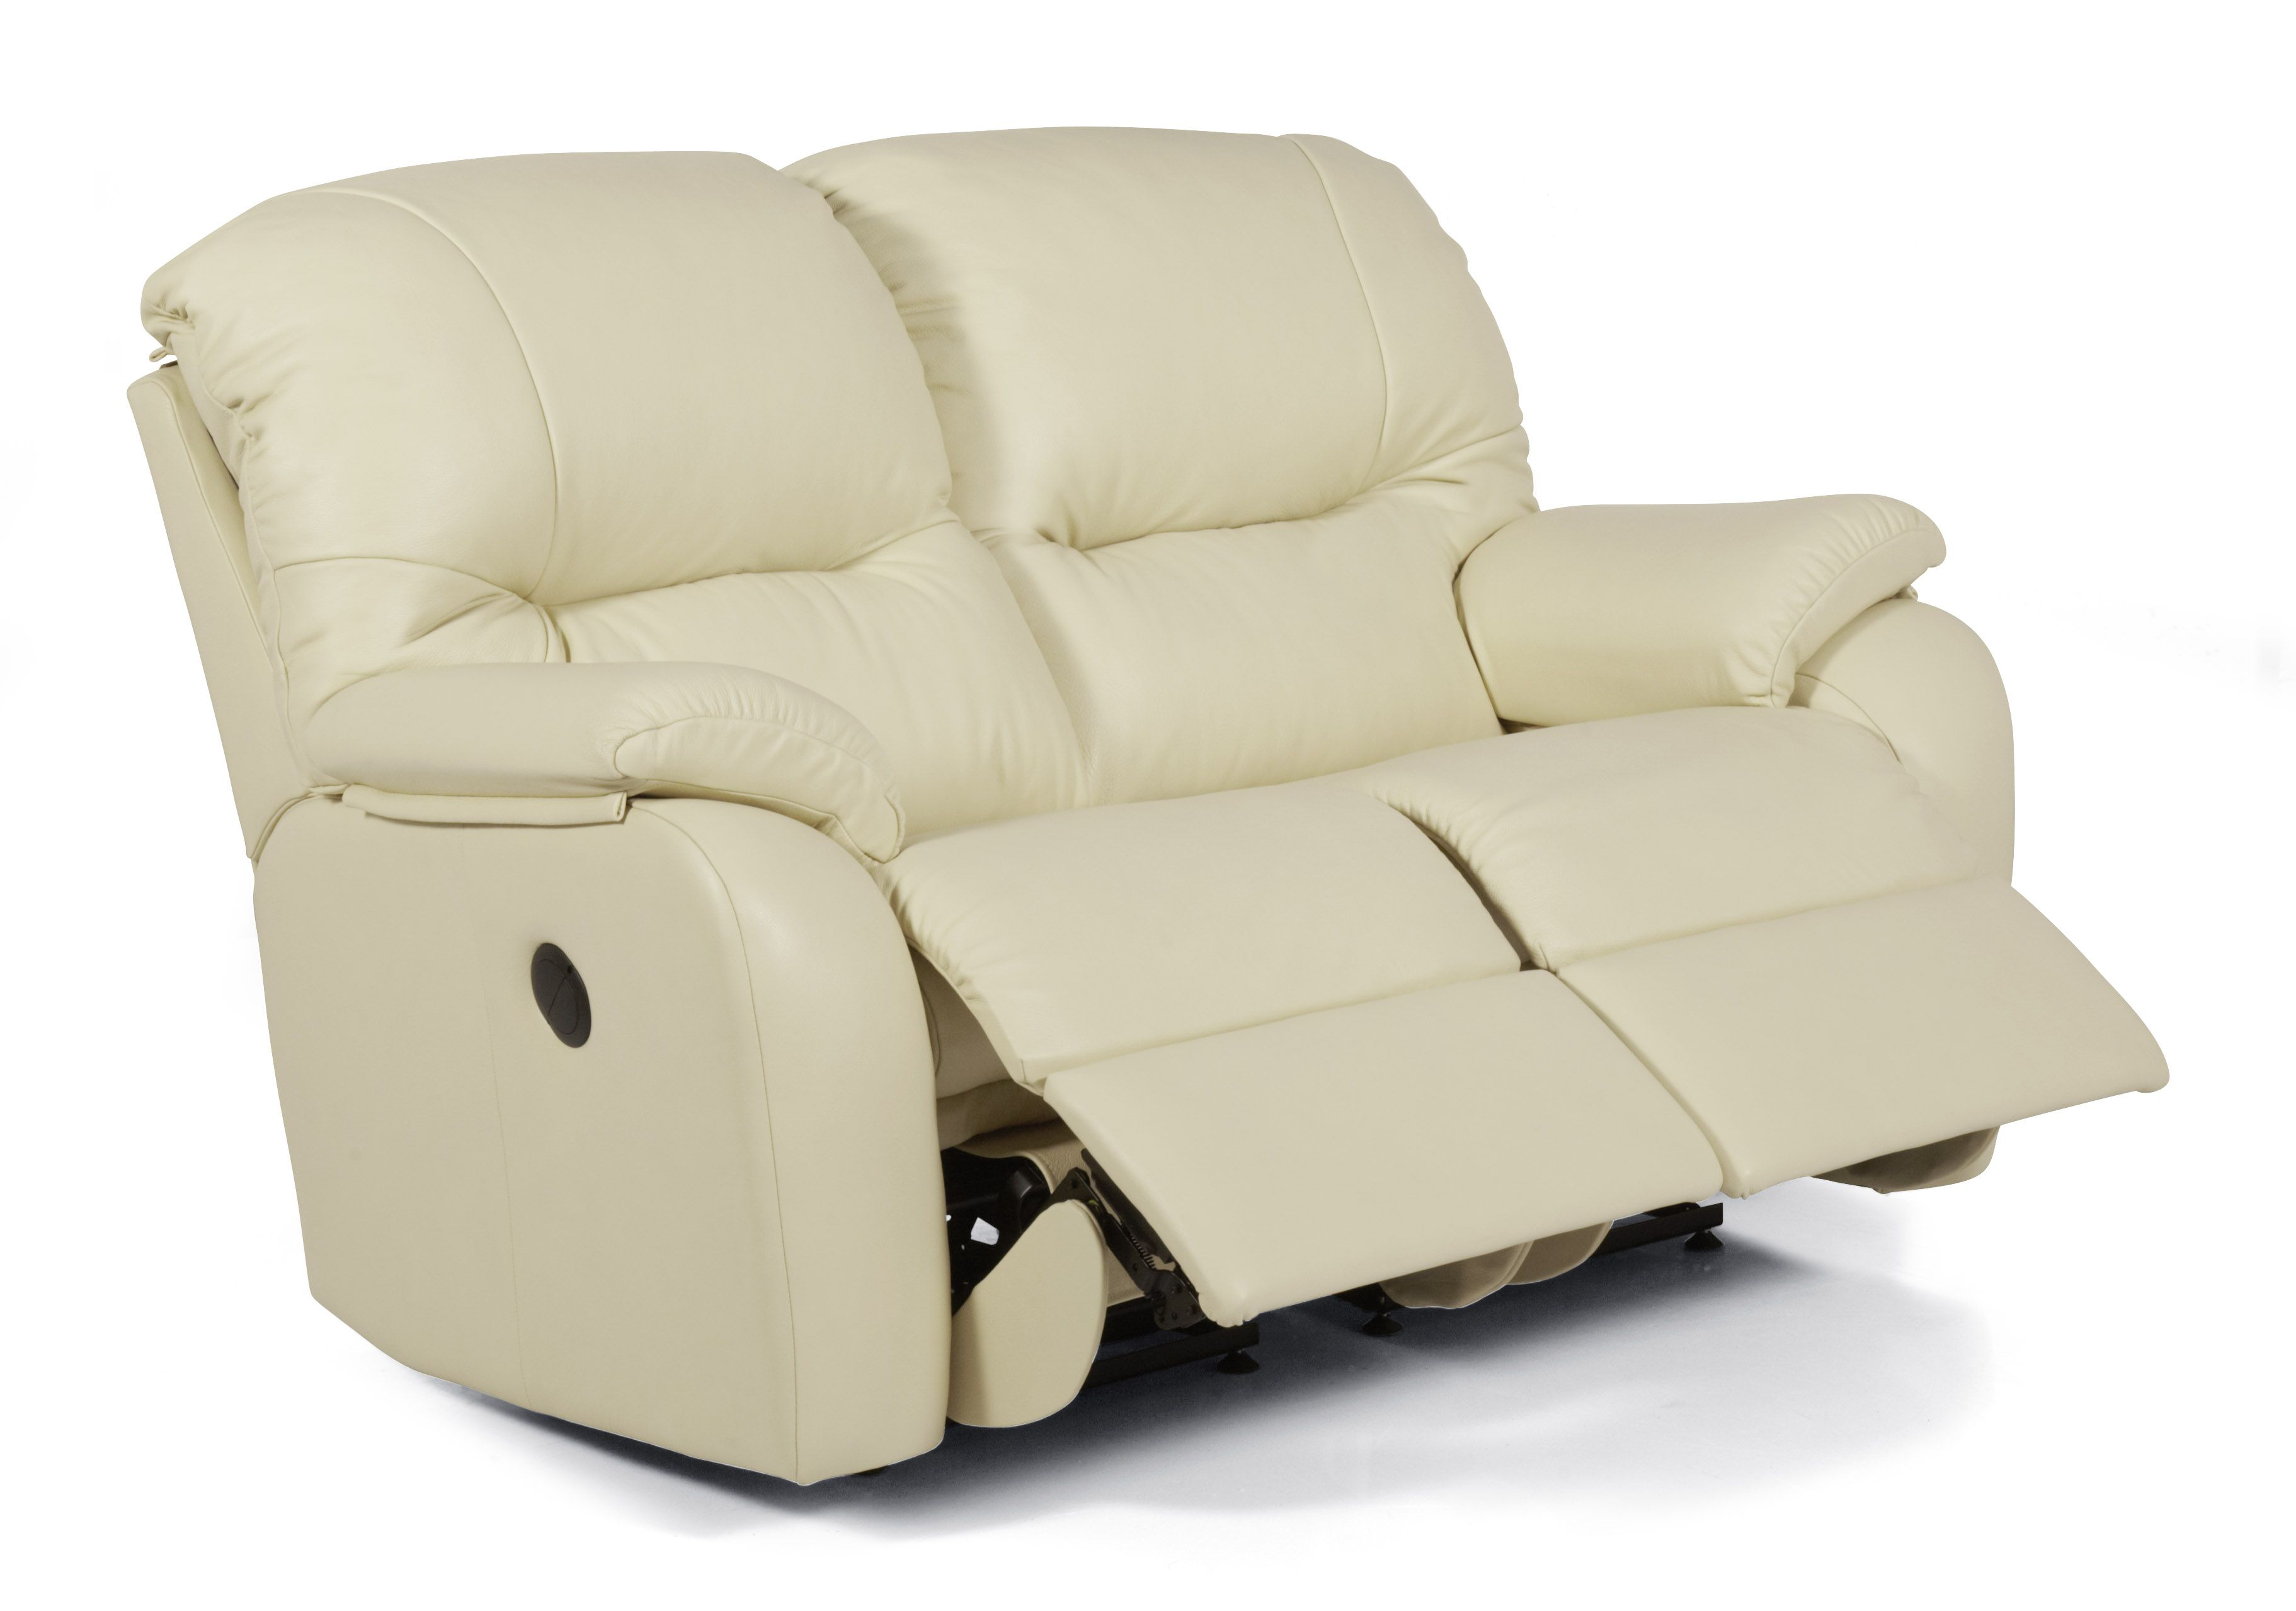 G Plan Mistral 2 Seater Power Recliner Double Sofa Review